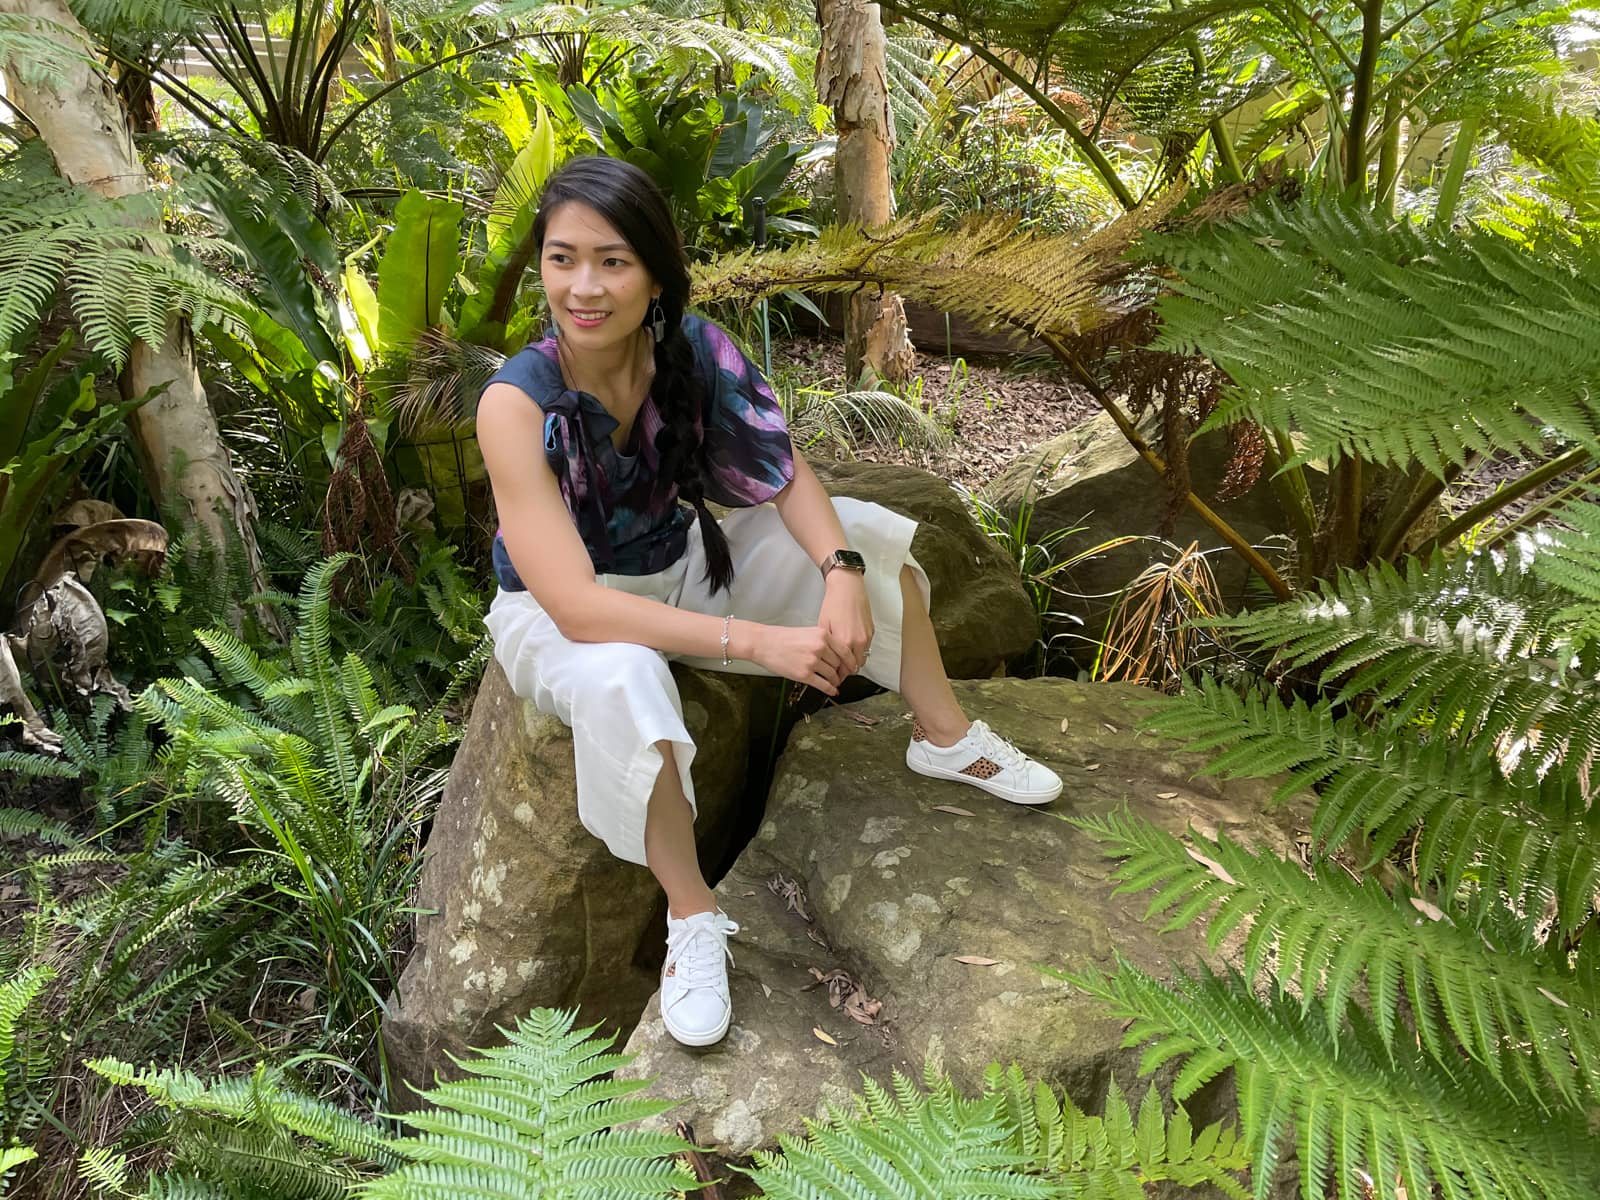 A woman with fair skin and long dark hair braided loosely in a side braid. She is wearing a dark top with a blue and purple floral pattern, white loose short pants, and white sneakers. She is sitting on a rock amongst some trees with fern-like fronds.